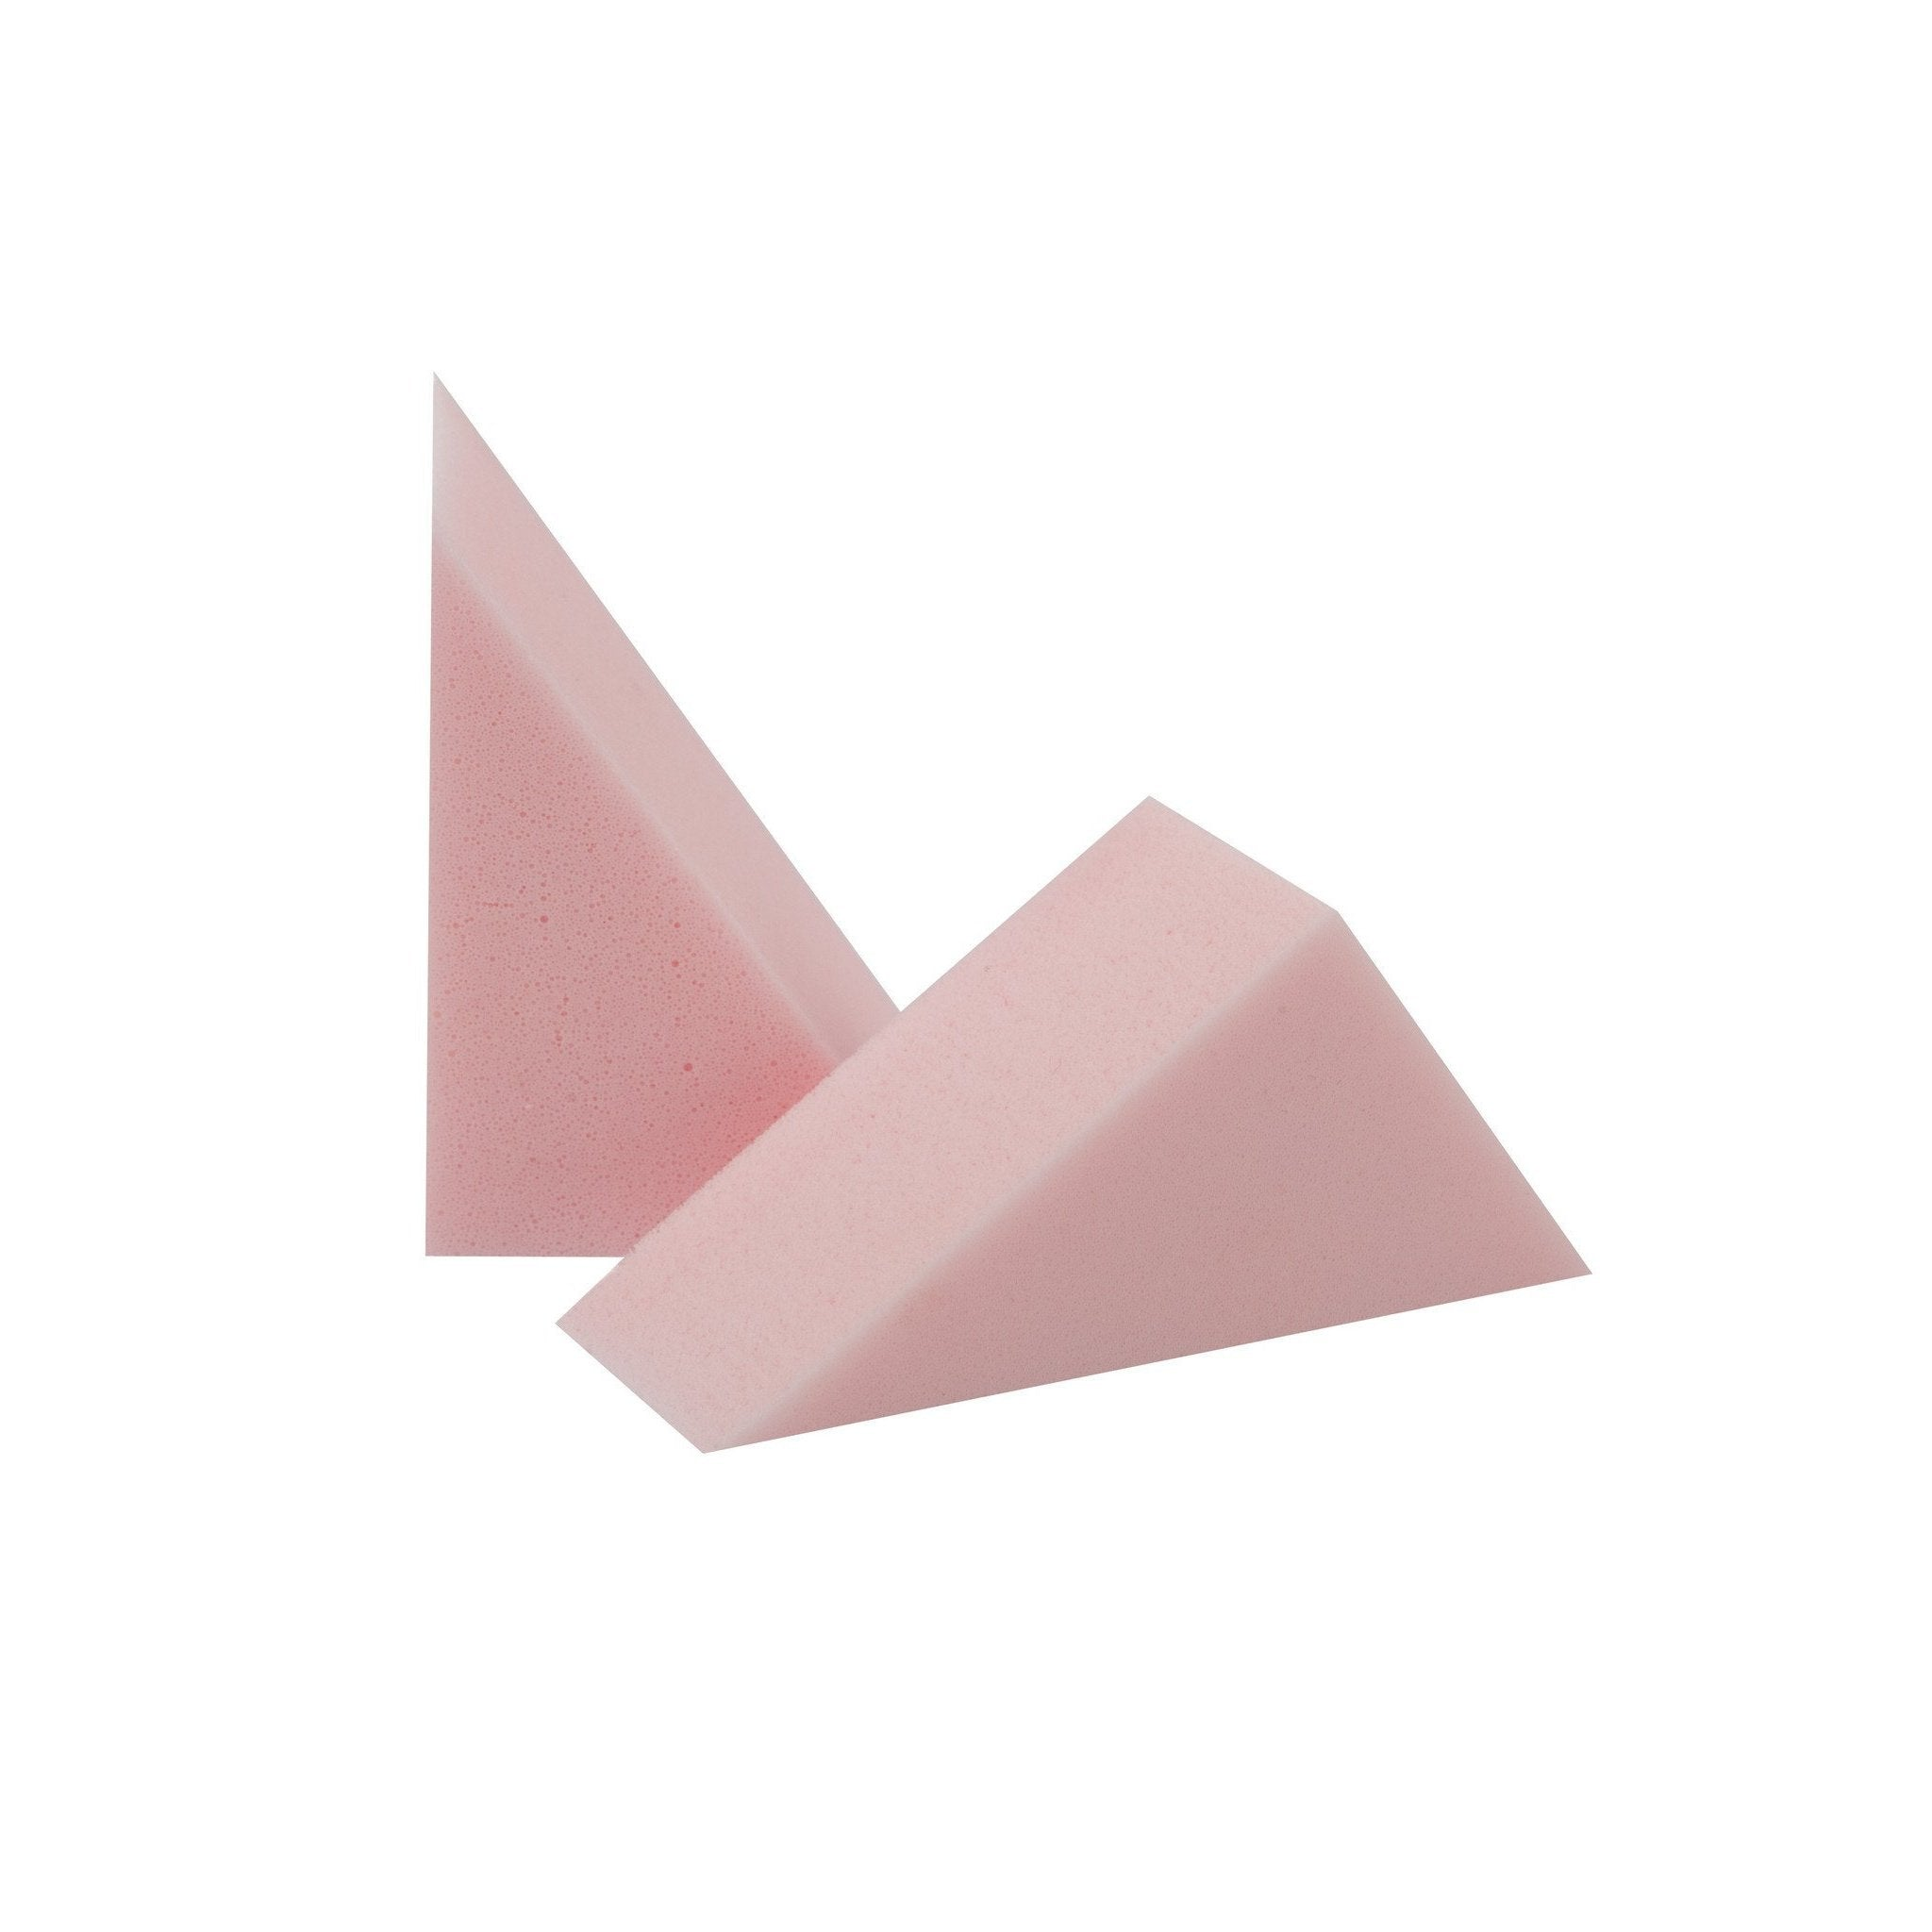 INGLOT Triangle Sponge Applicator - GetDollied USA